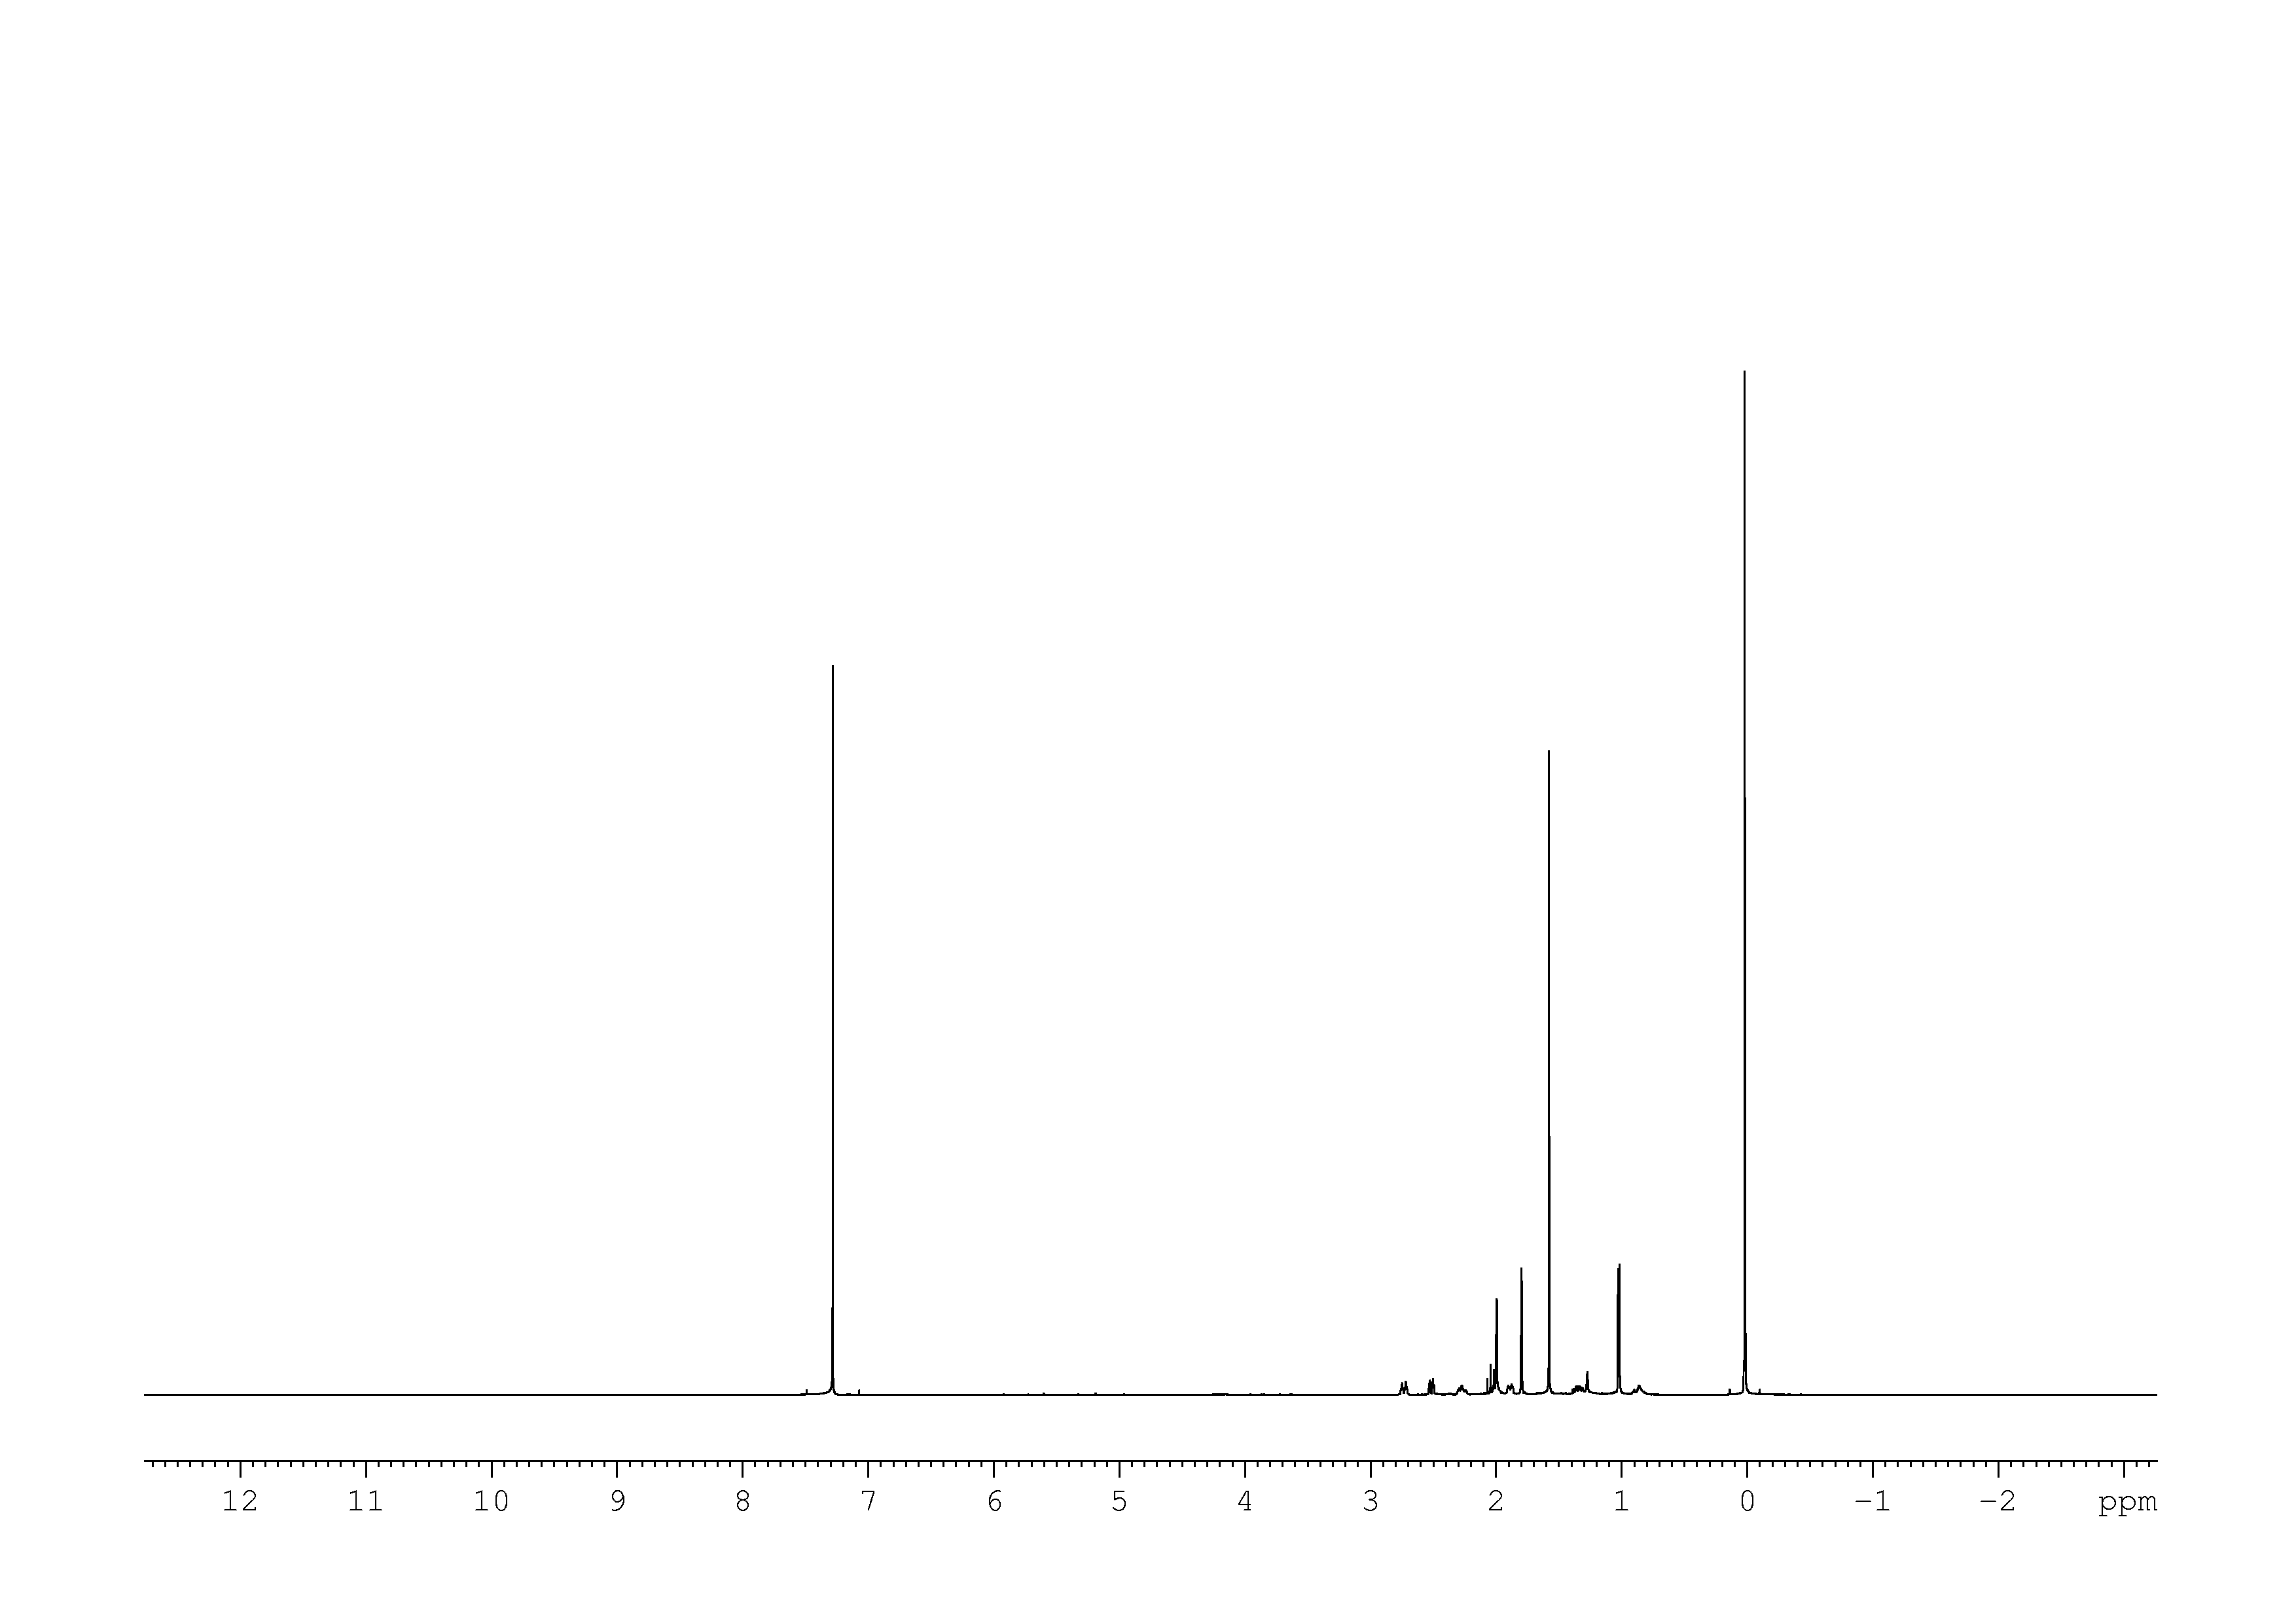 1D 1H, 2.0 mM, n/a spectrum for (+)-Pulegone